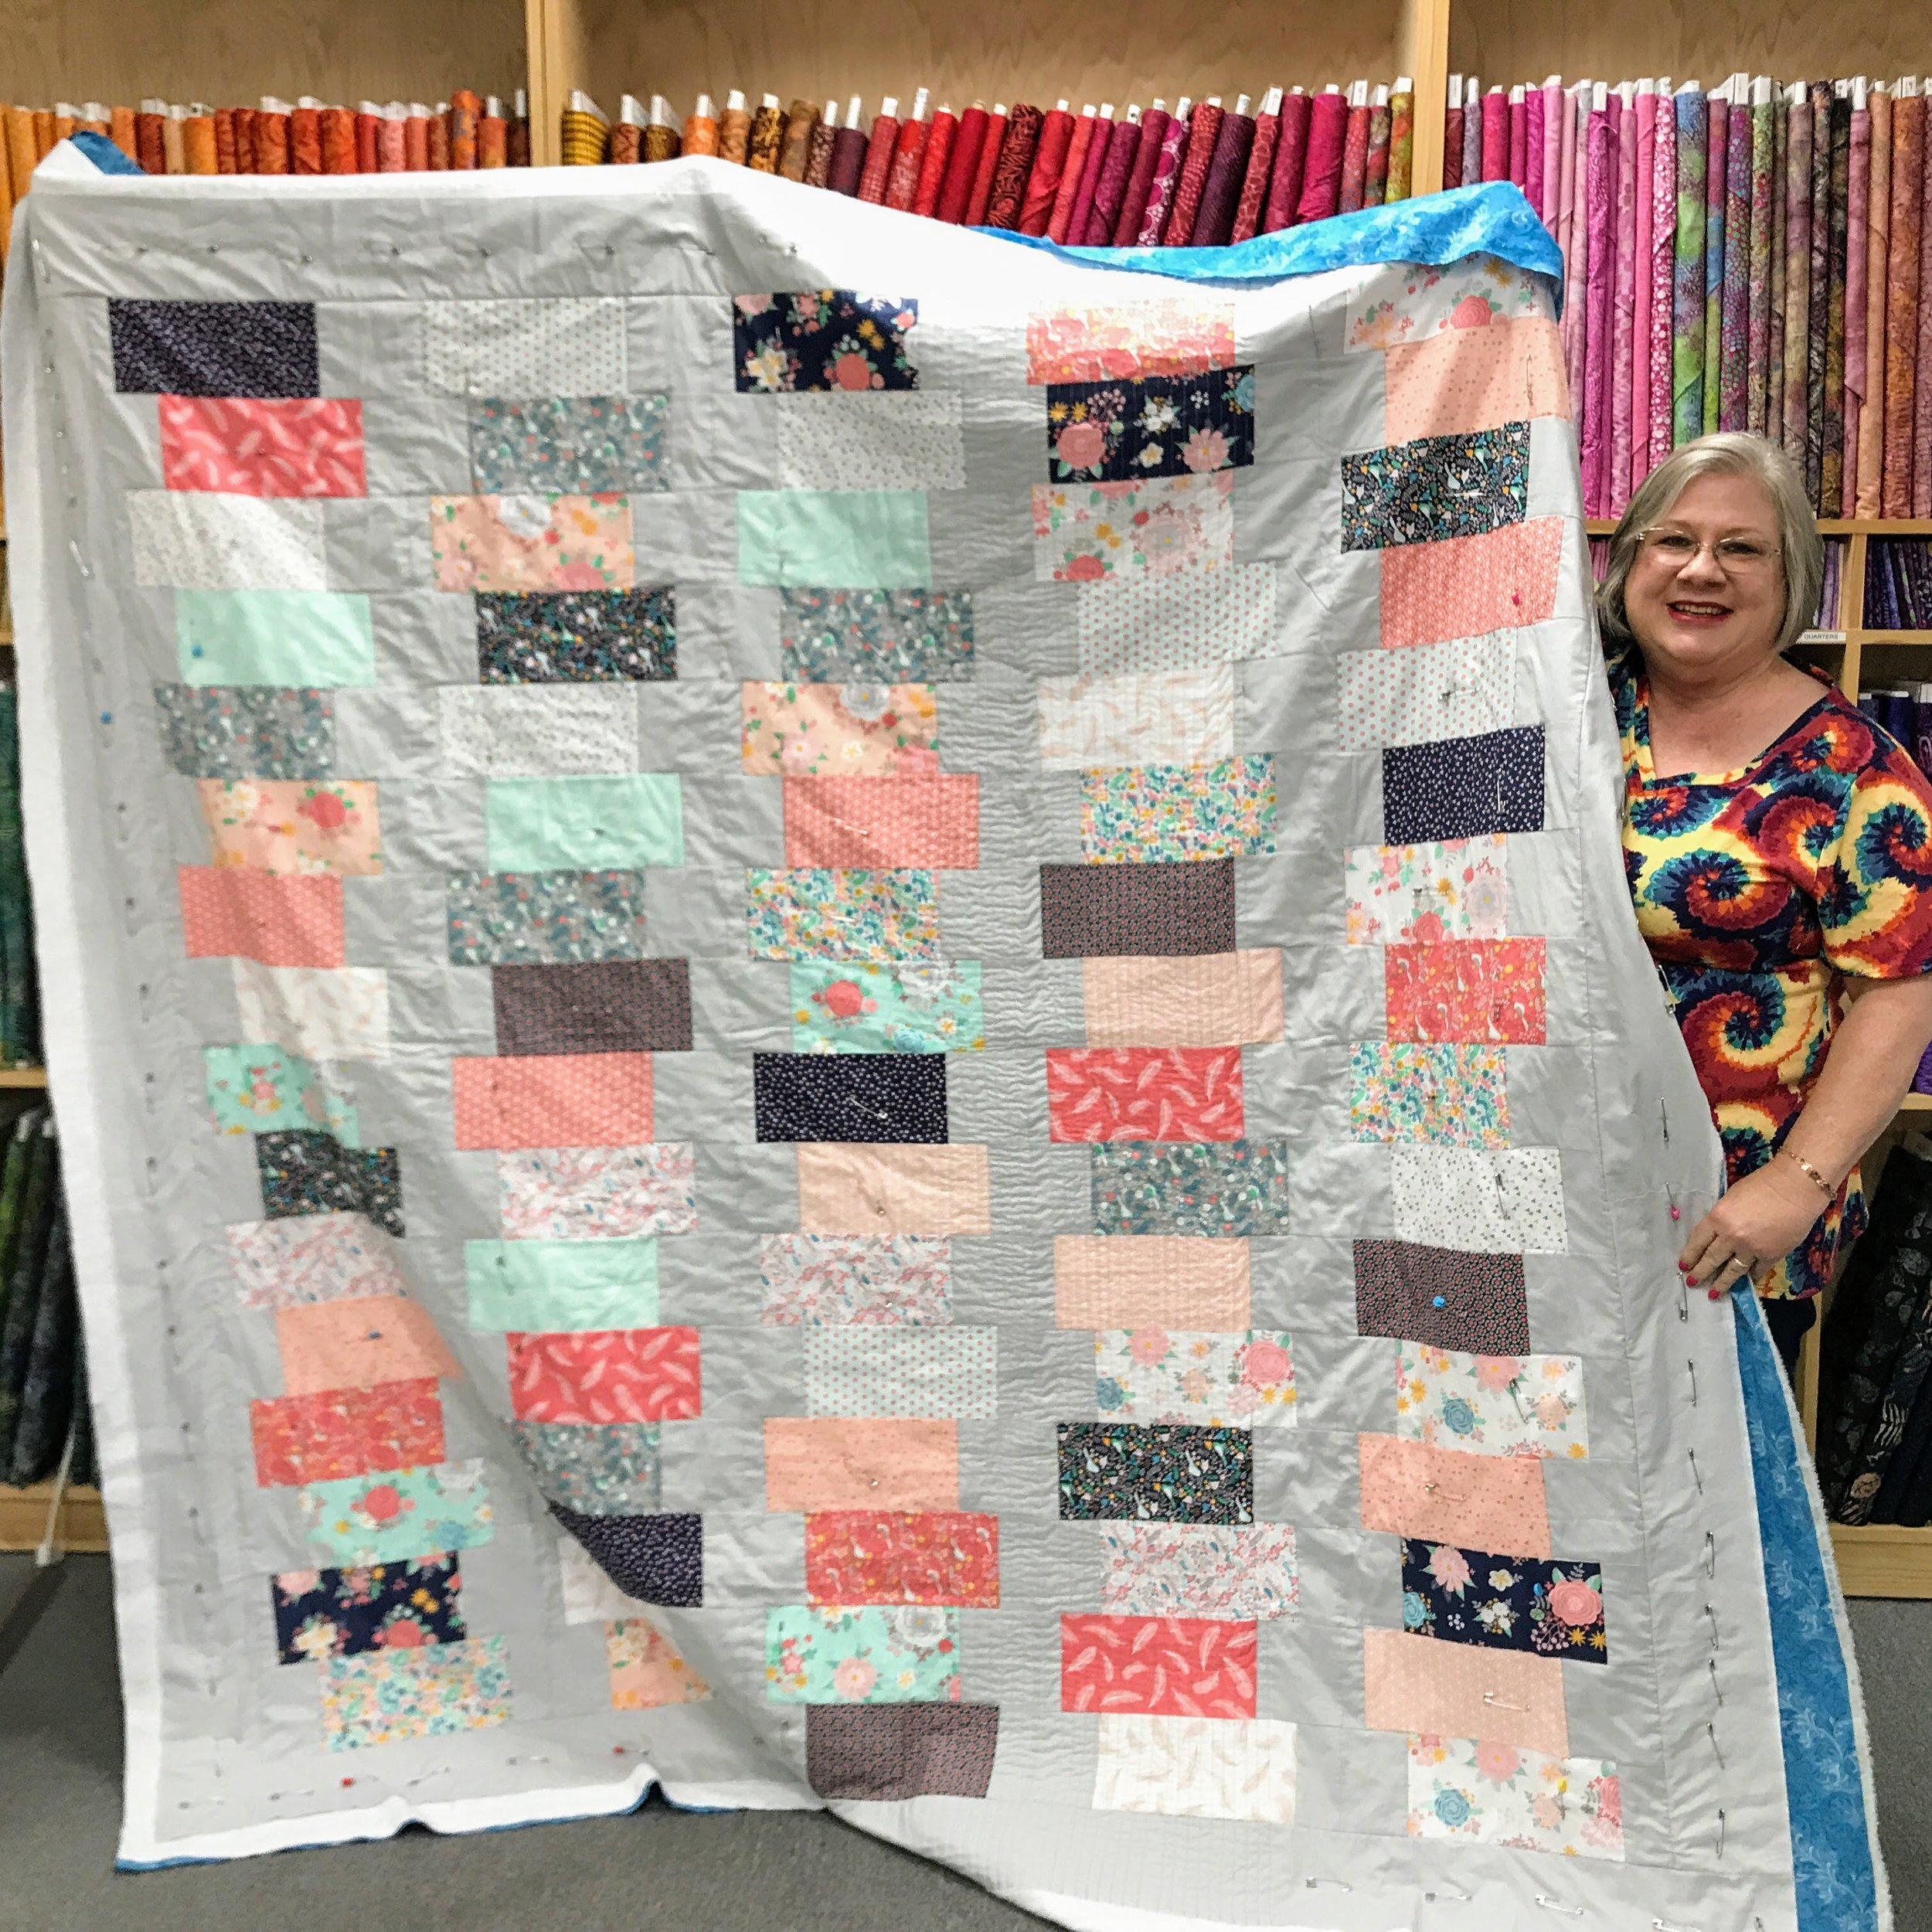 Kaye Laymance is in the midst of straight-line quilting.